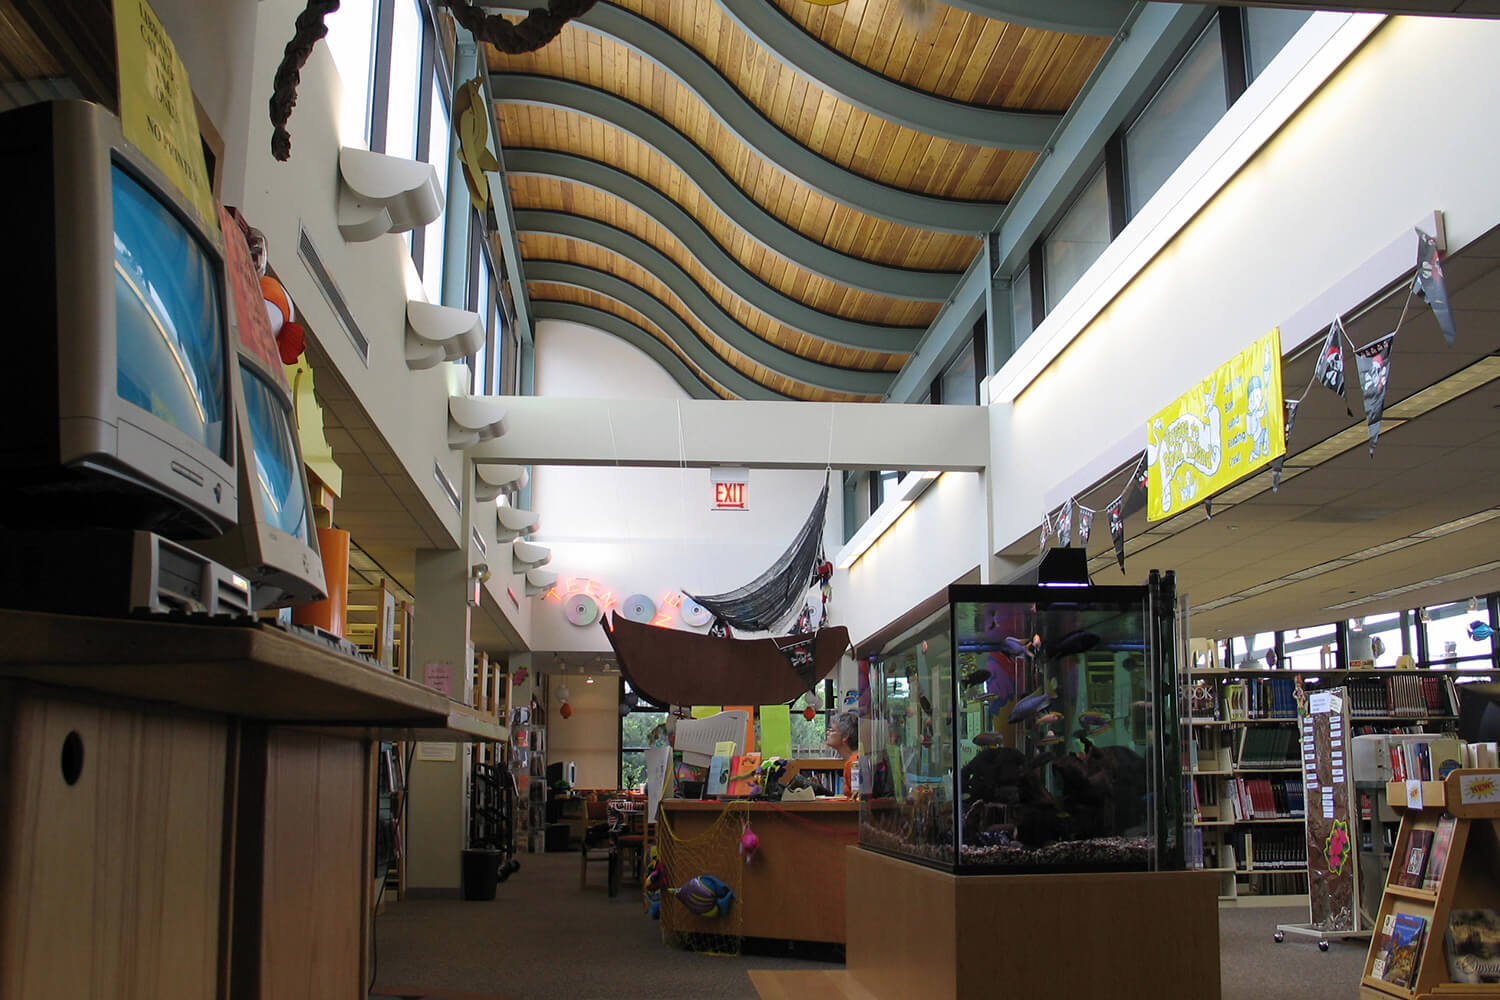 Lincolnwood Public Library interior 2